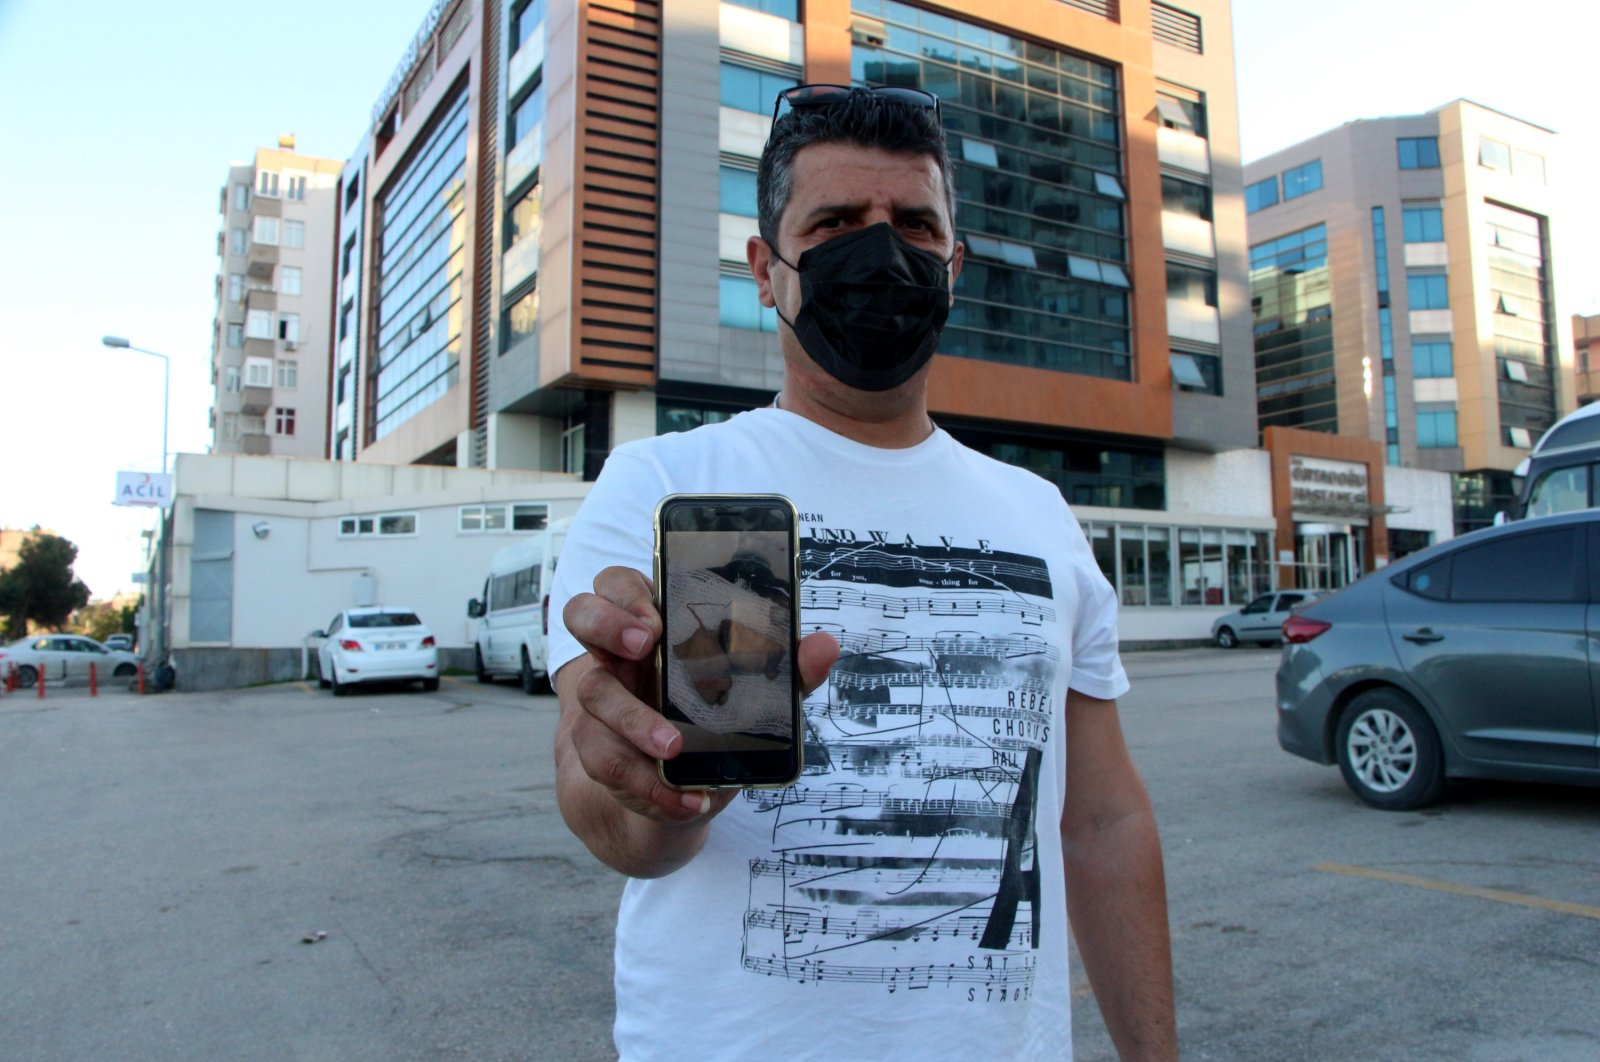 Cengiz Balcı shows a photo of the severed fingers he found, in Adana, southern Turkey, May 11, 2021. (DHA PHOTO)